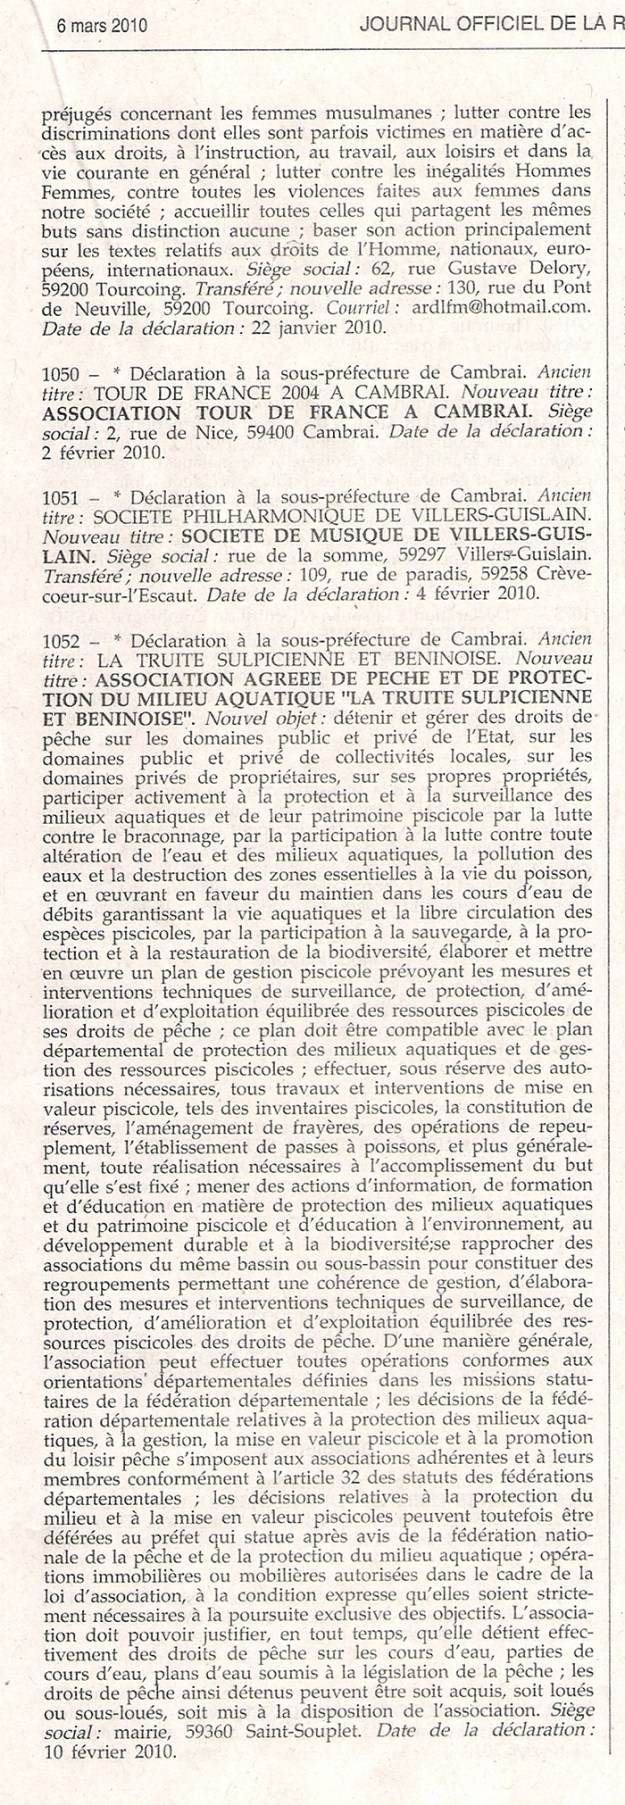 Inscription da l'AAPPMA au journal officiel